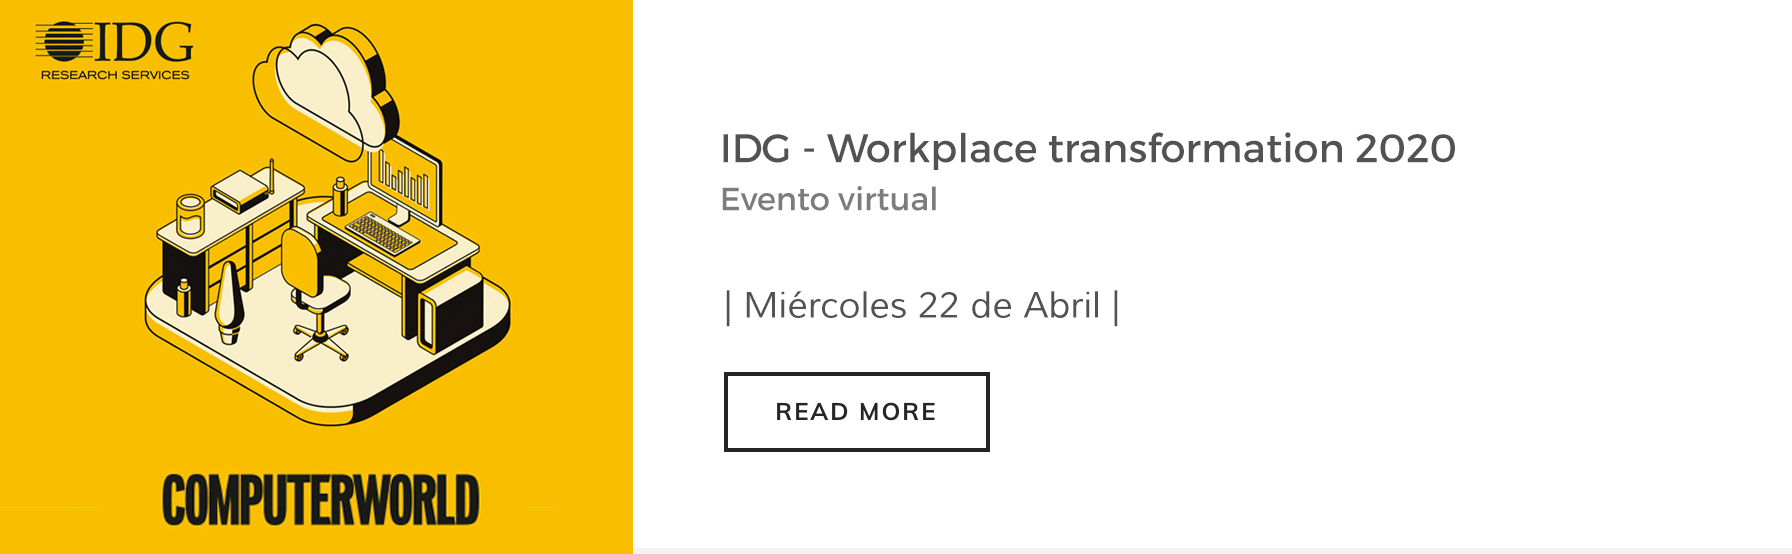 evento-workplace tranformation